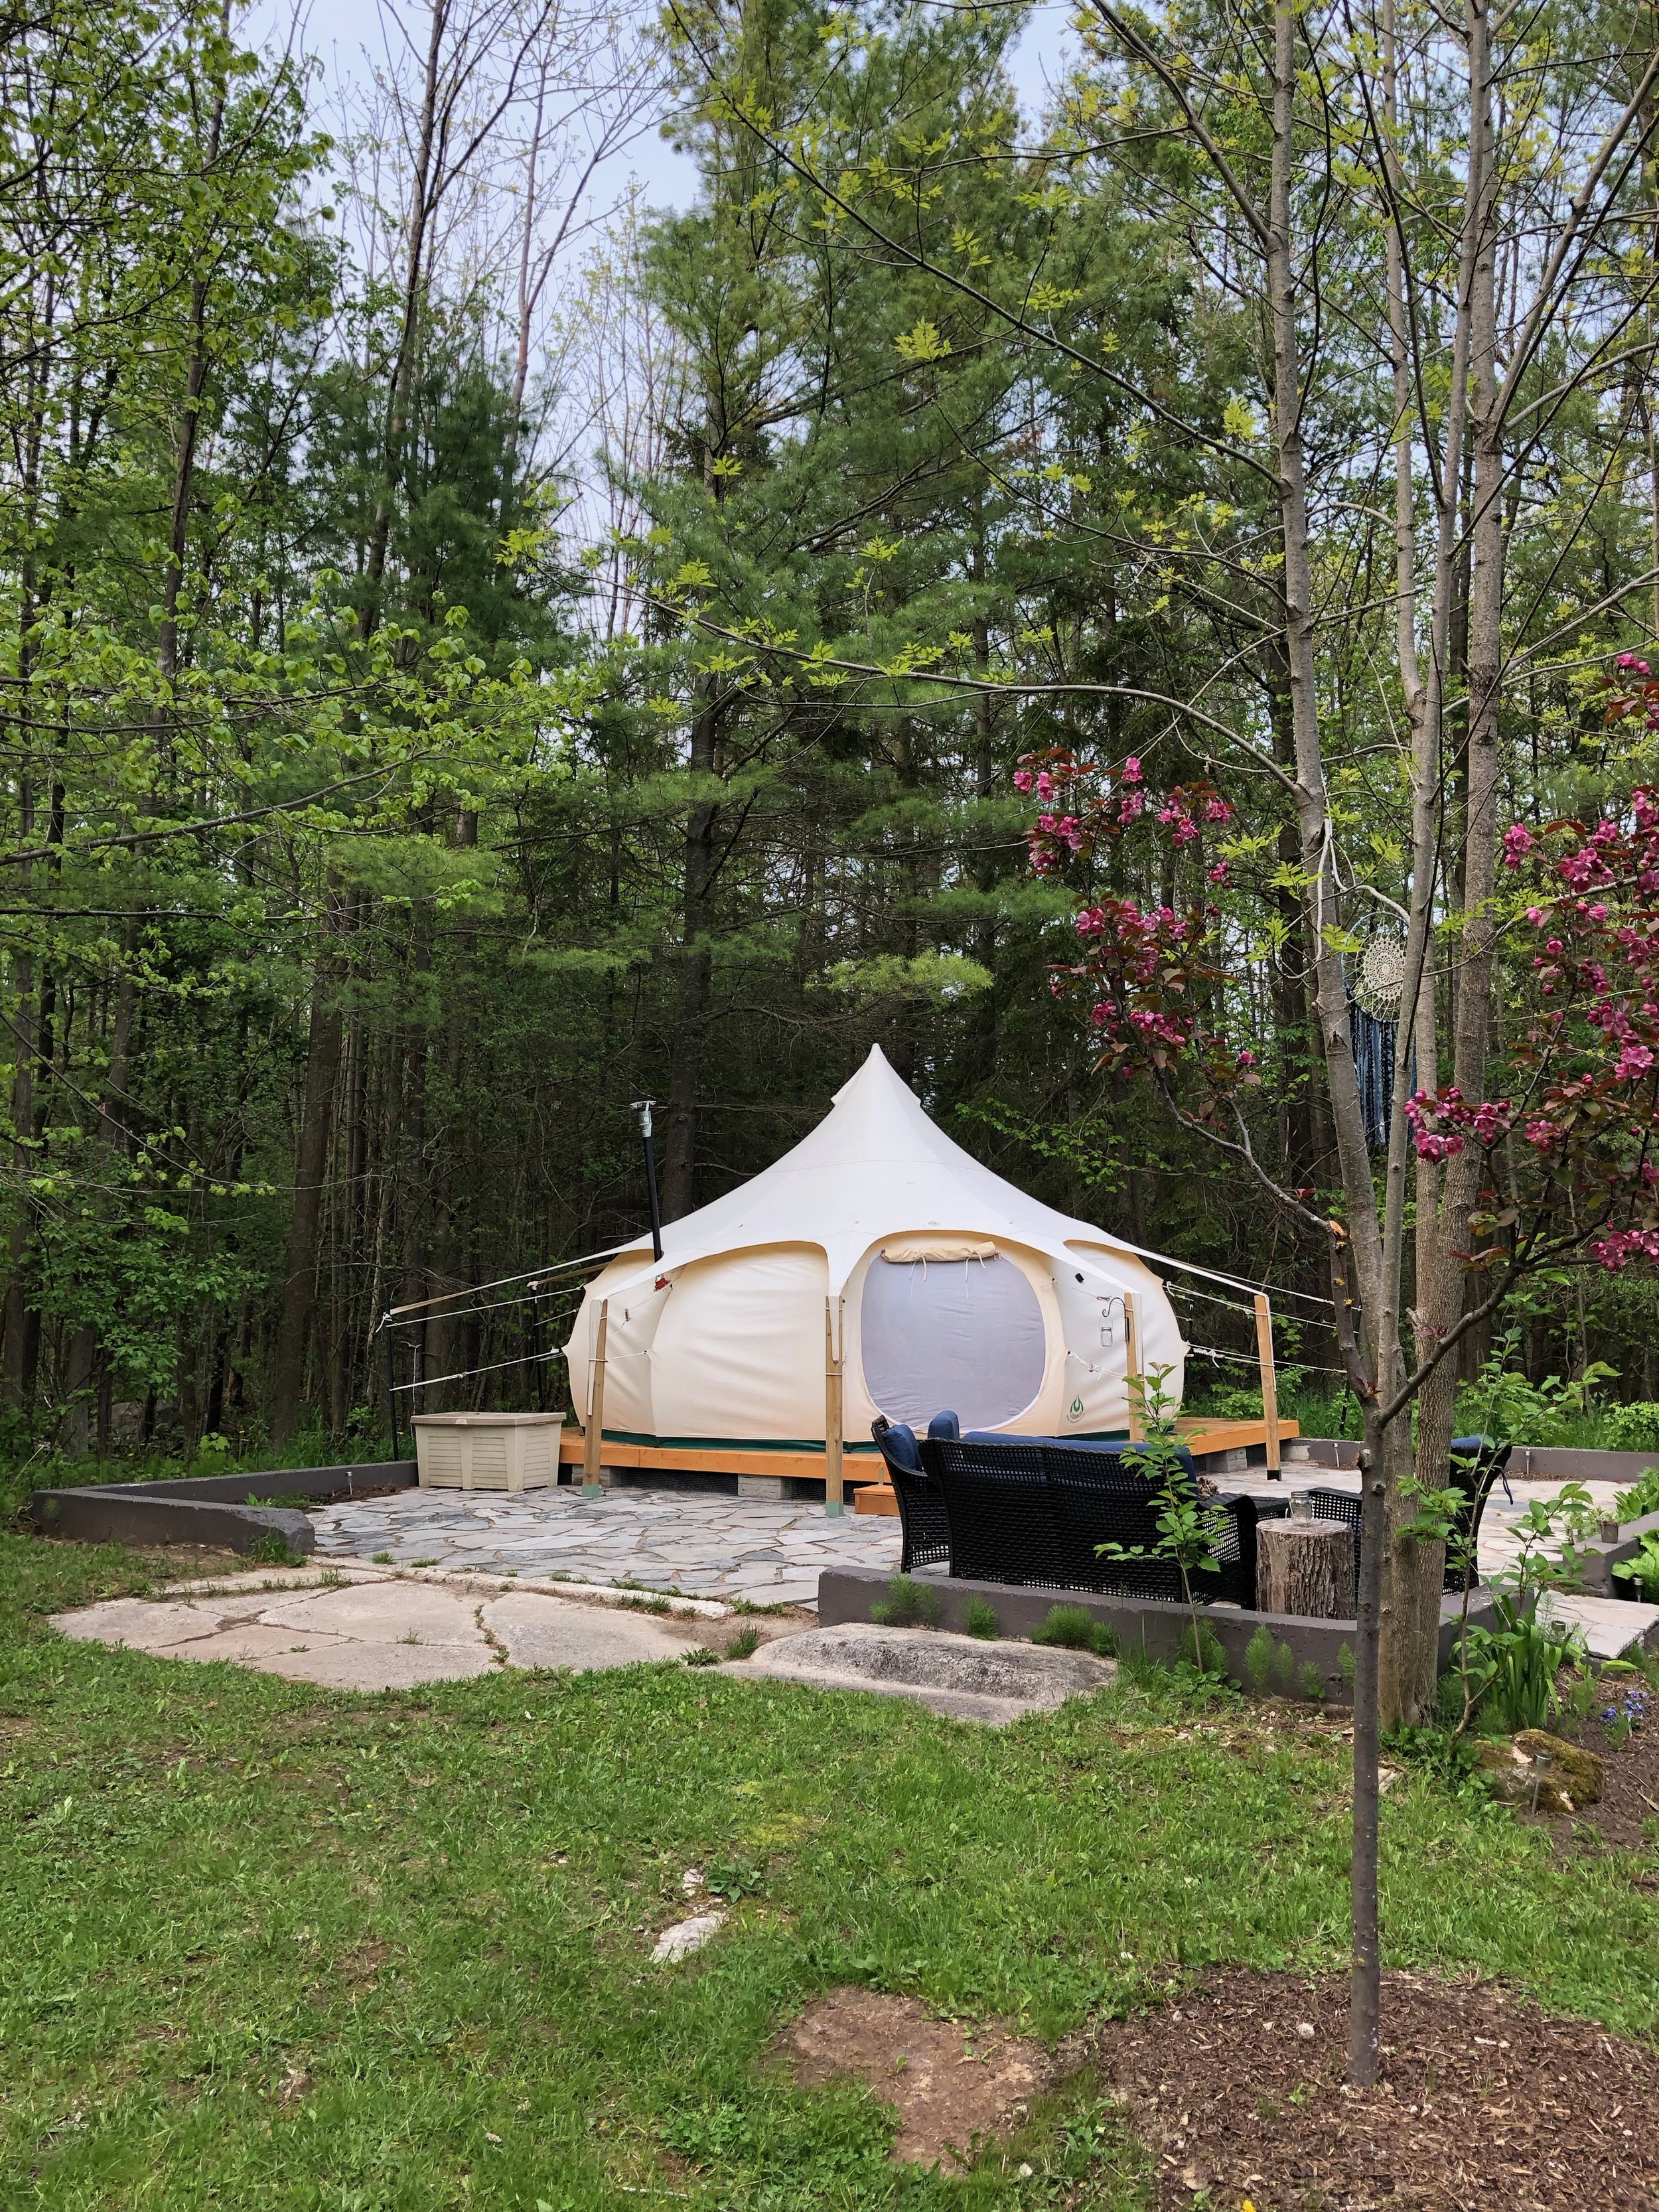 melissatwistevents_glamping_collingwood_bluemountaineventplanner 02.jpeg